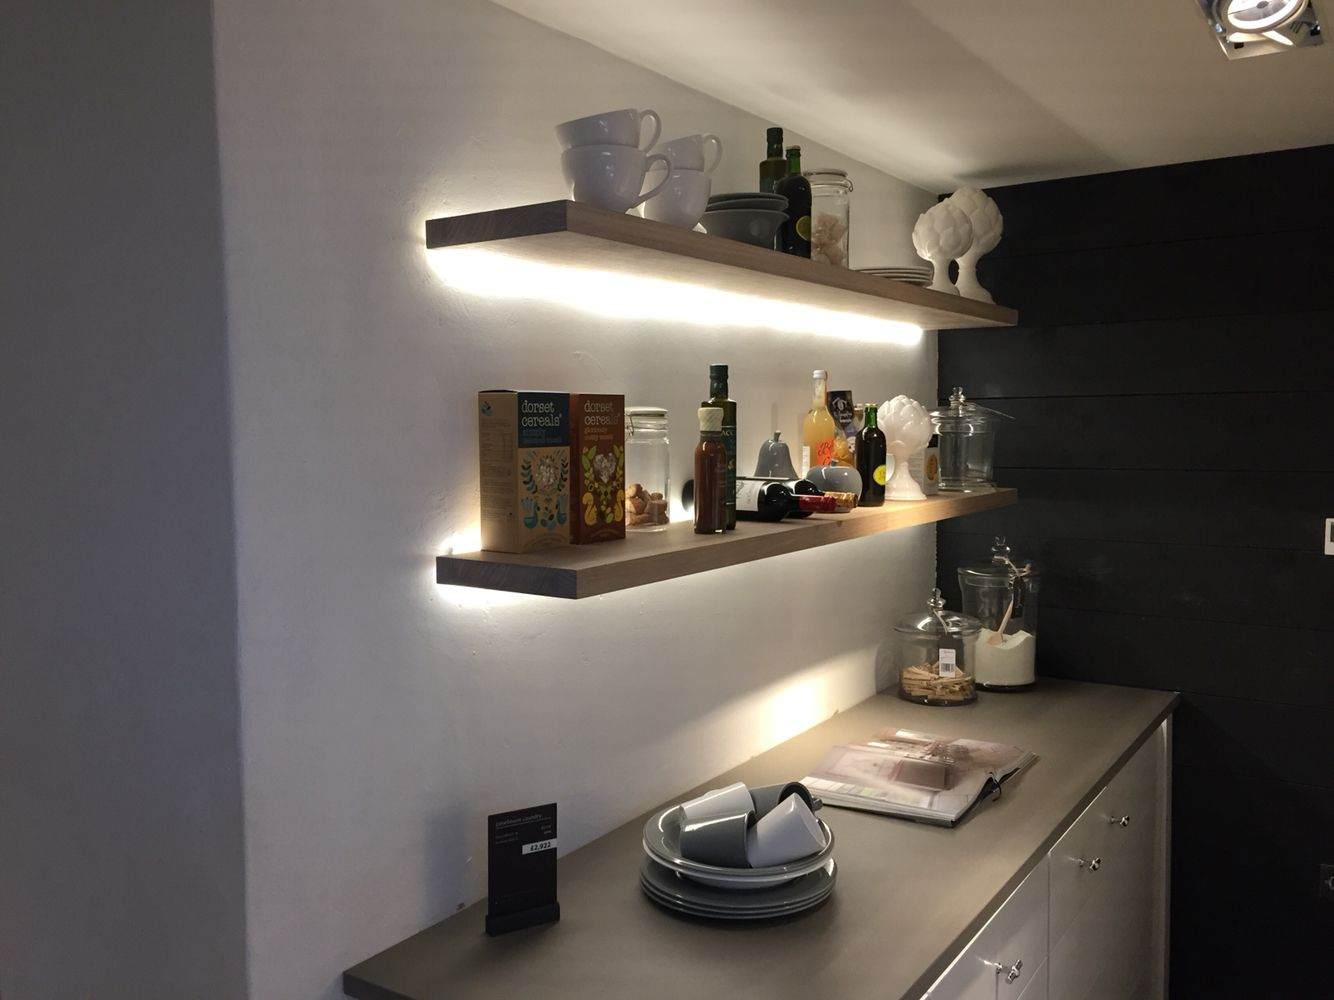 Beautiful Floating Shelves, With Strip LED Lighting On Exposed Brick Wall. Can We  Leave These